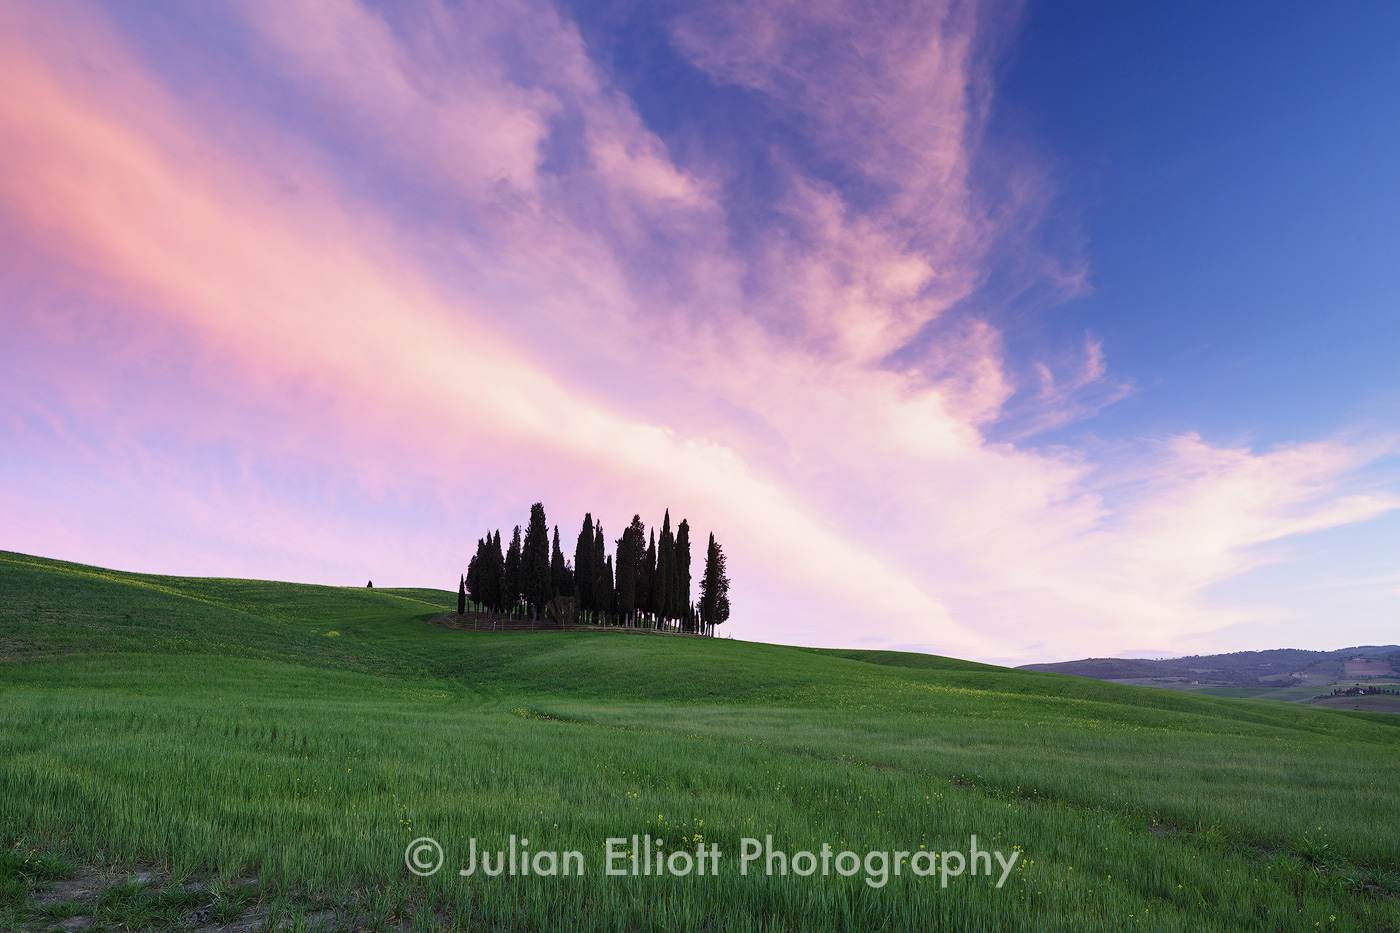 Cypress trees in the Val d'Orcia in Tuscany.